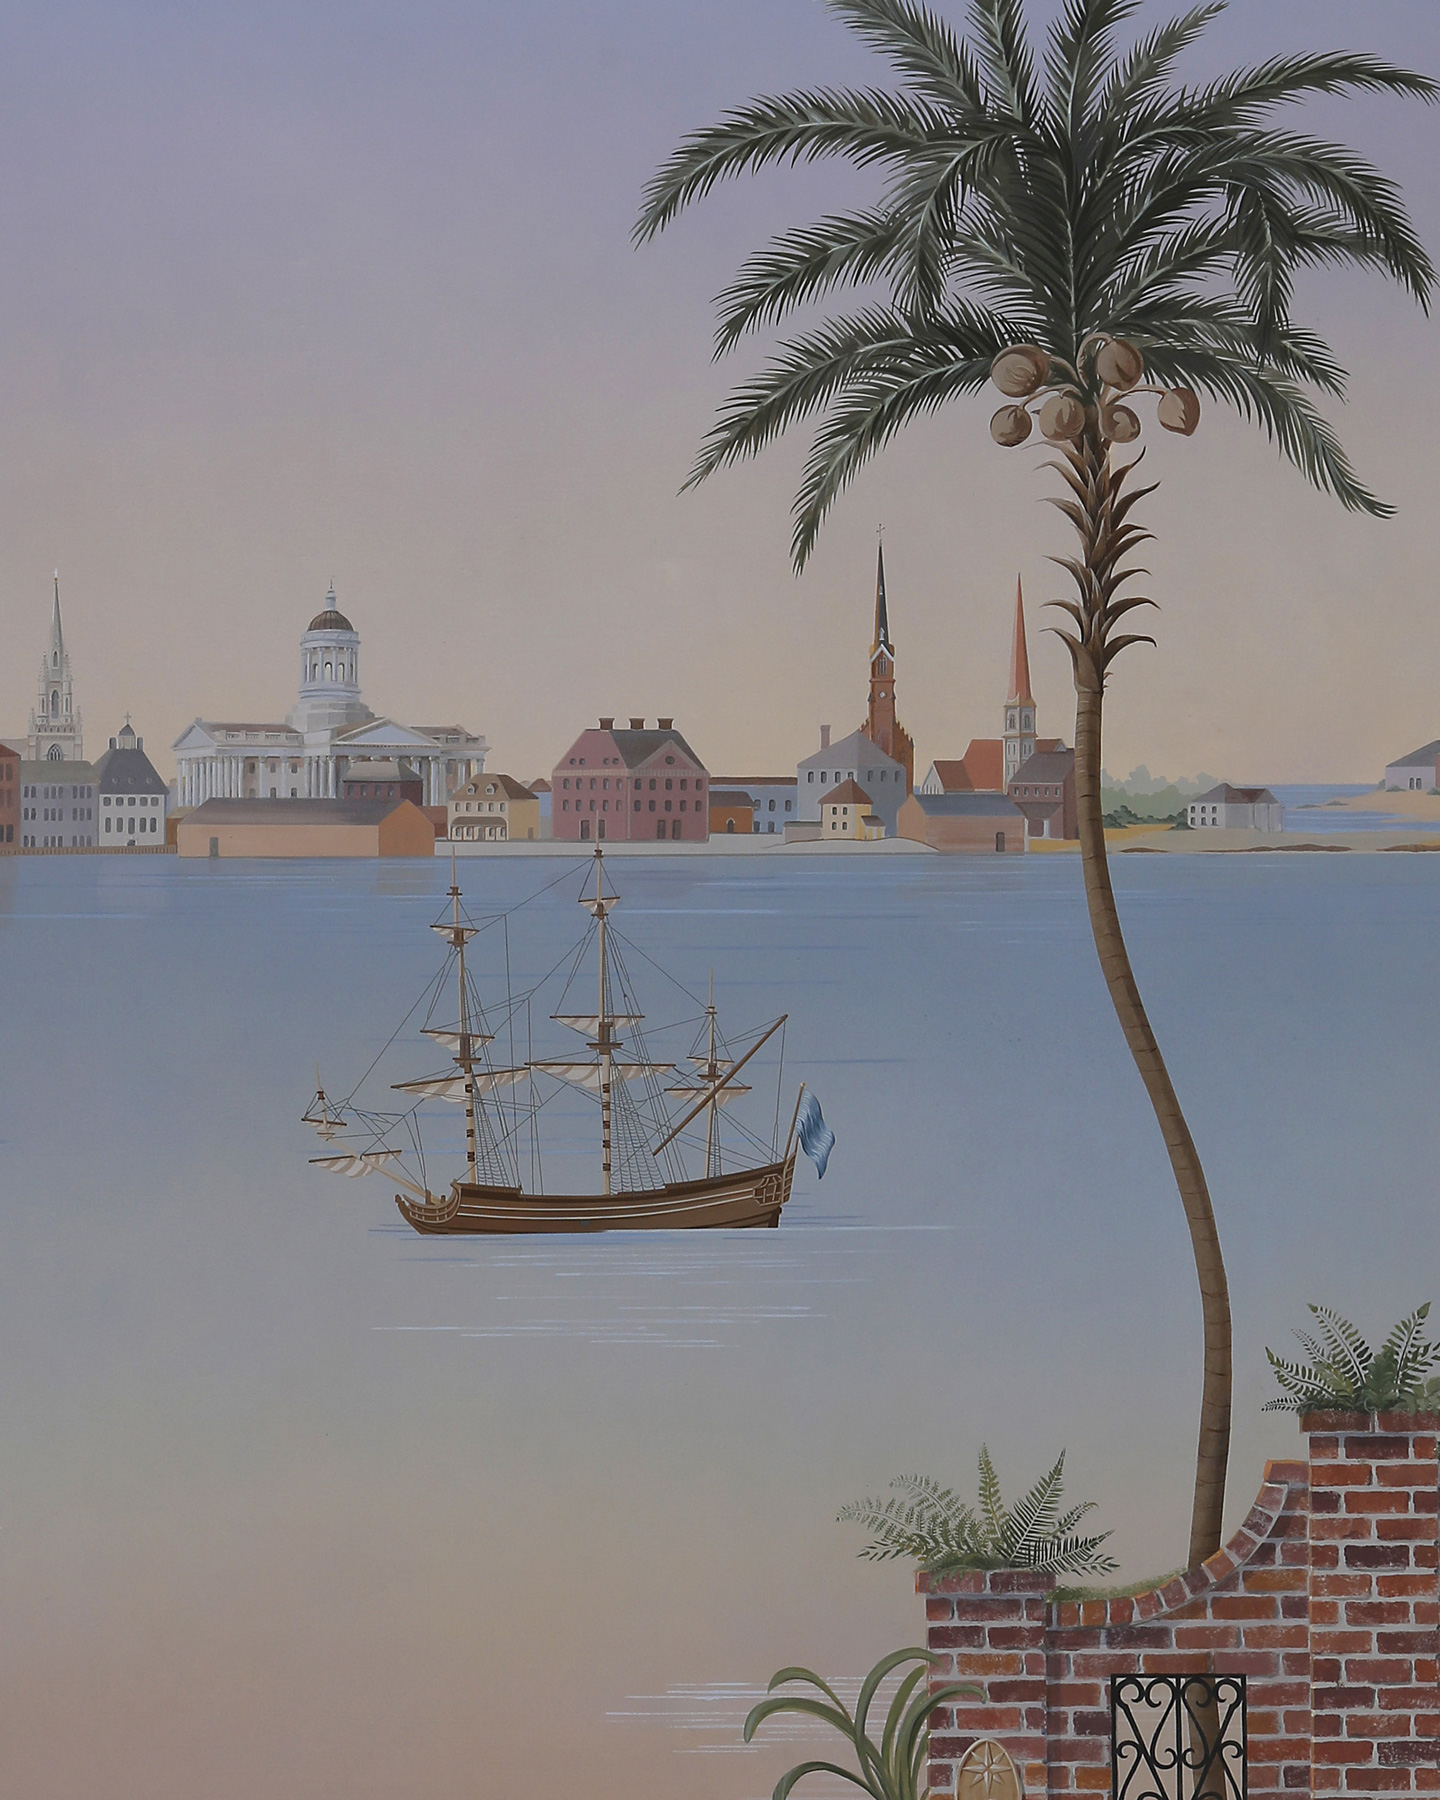 Low country mural with historic Savannah downtown and historic sailing ship